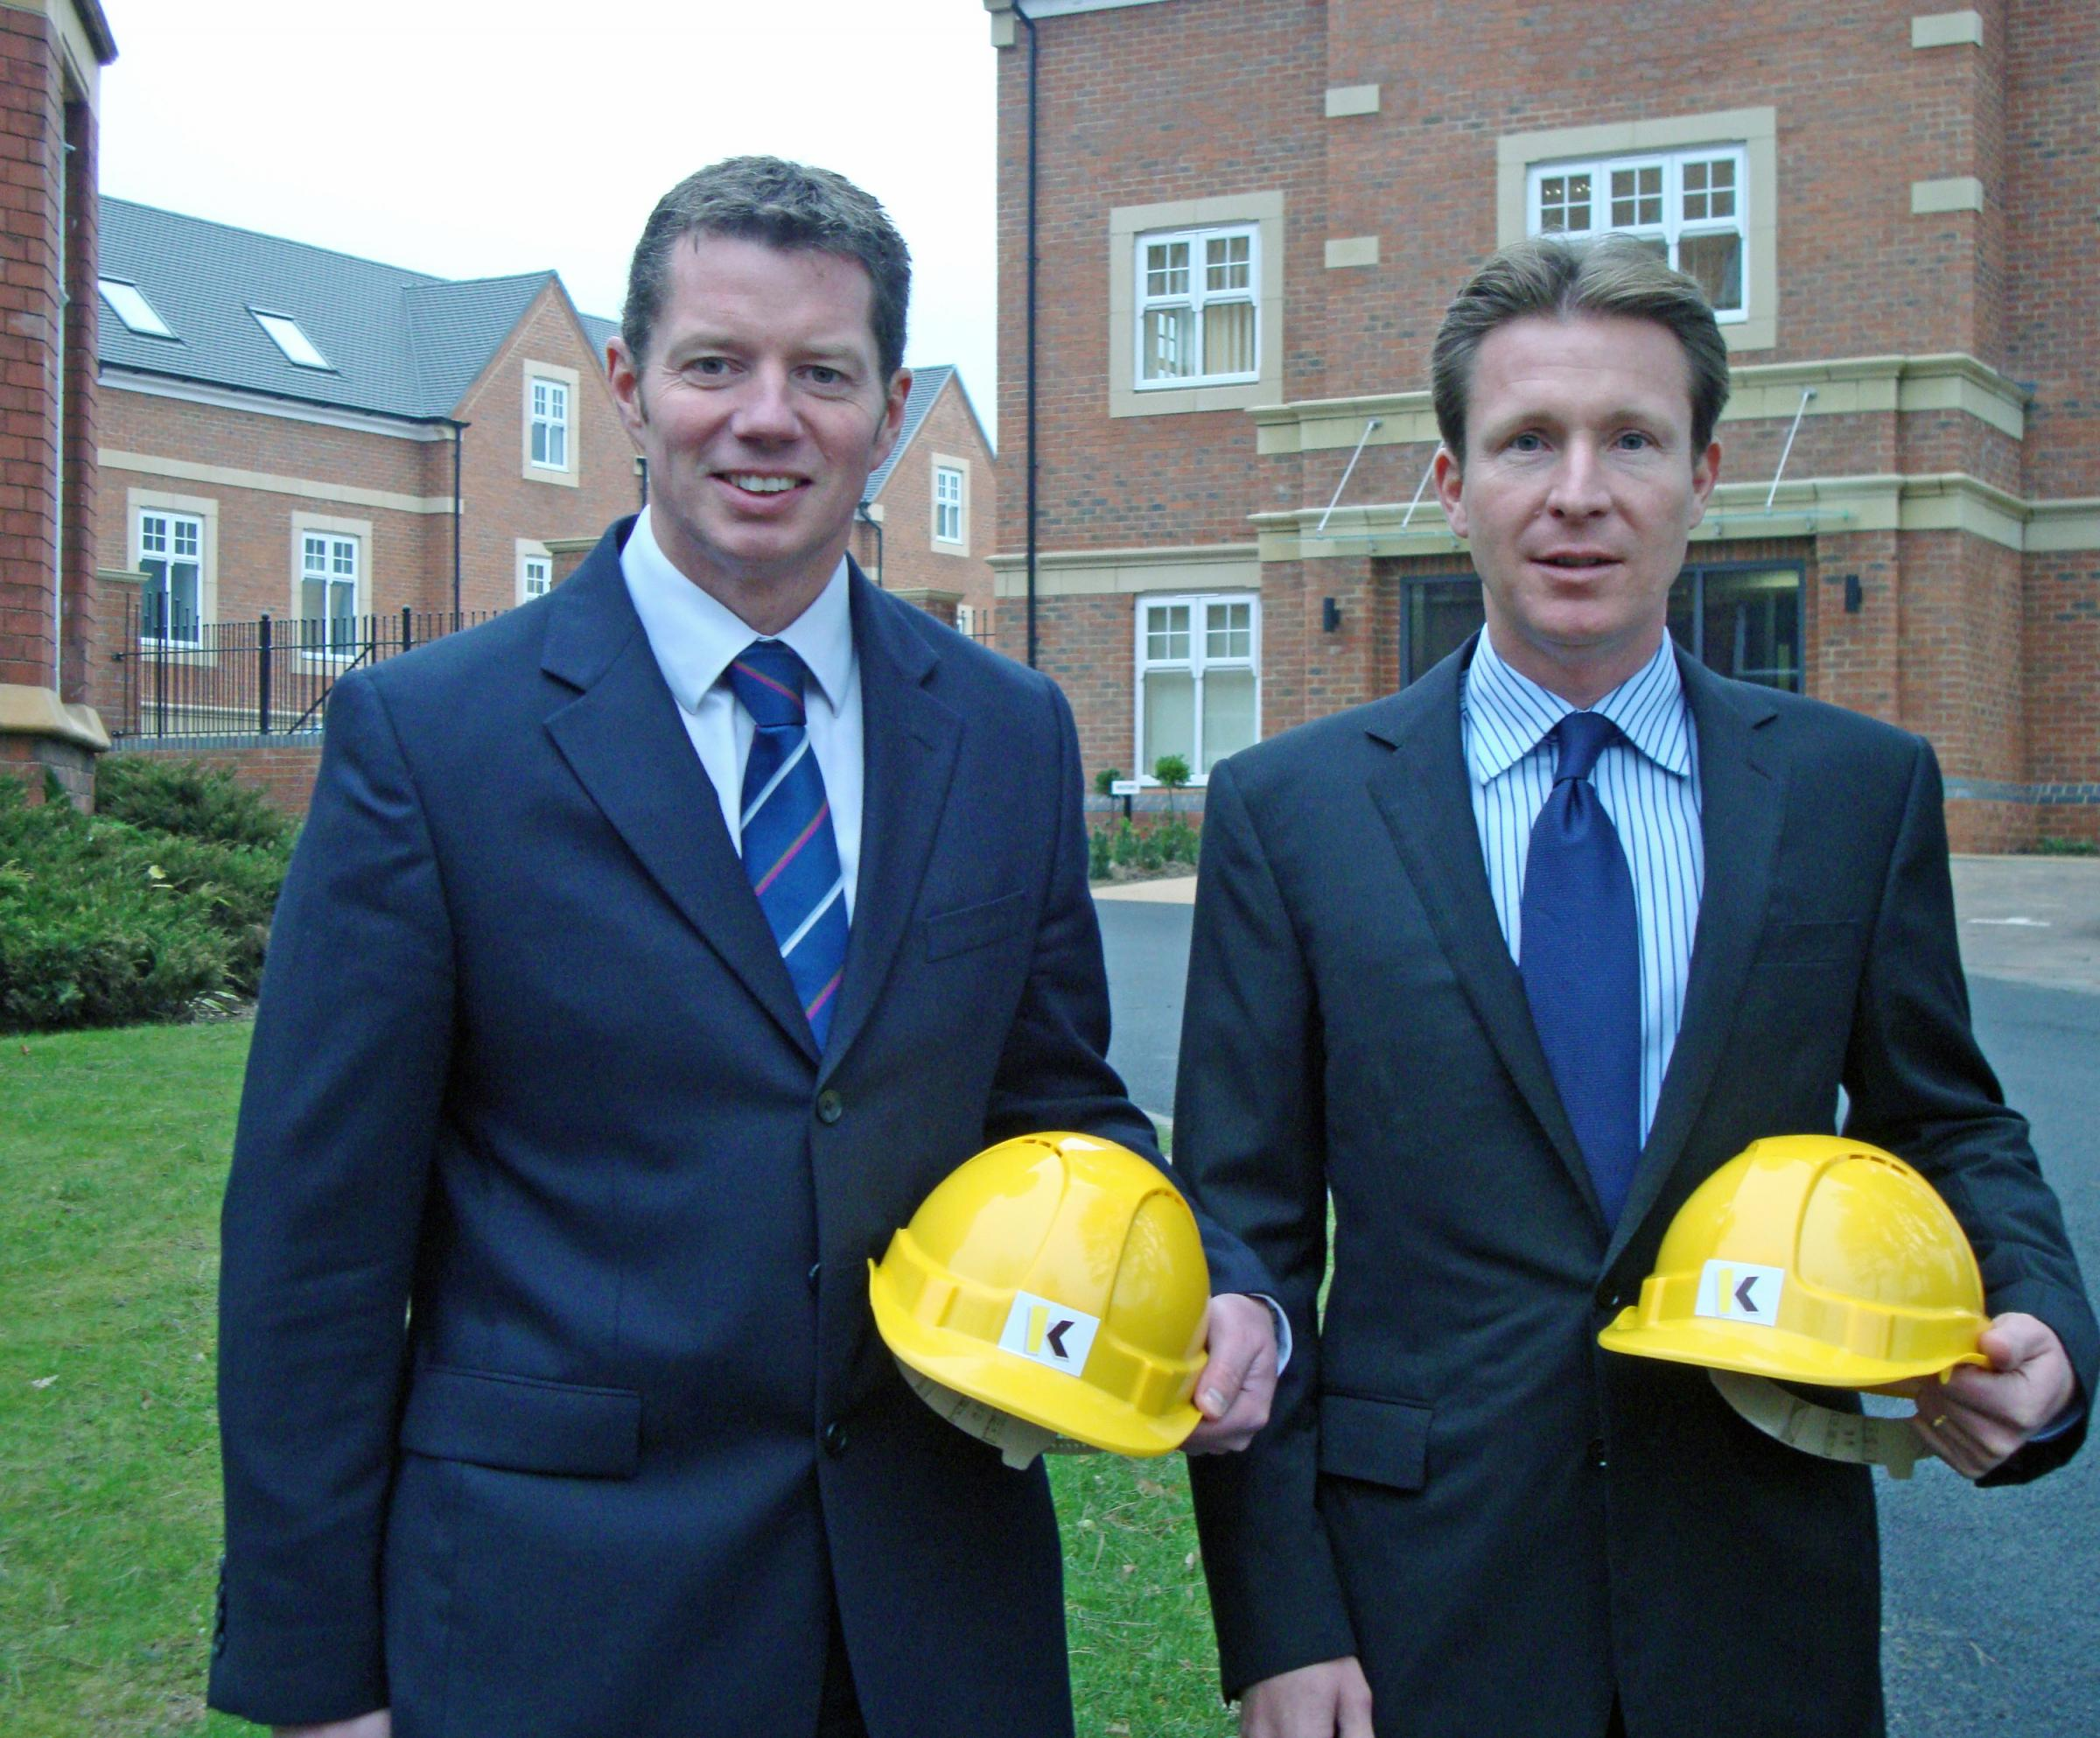 Left to right - James Rennison with William Kendrick with outside the new headquarters.